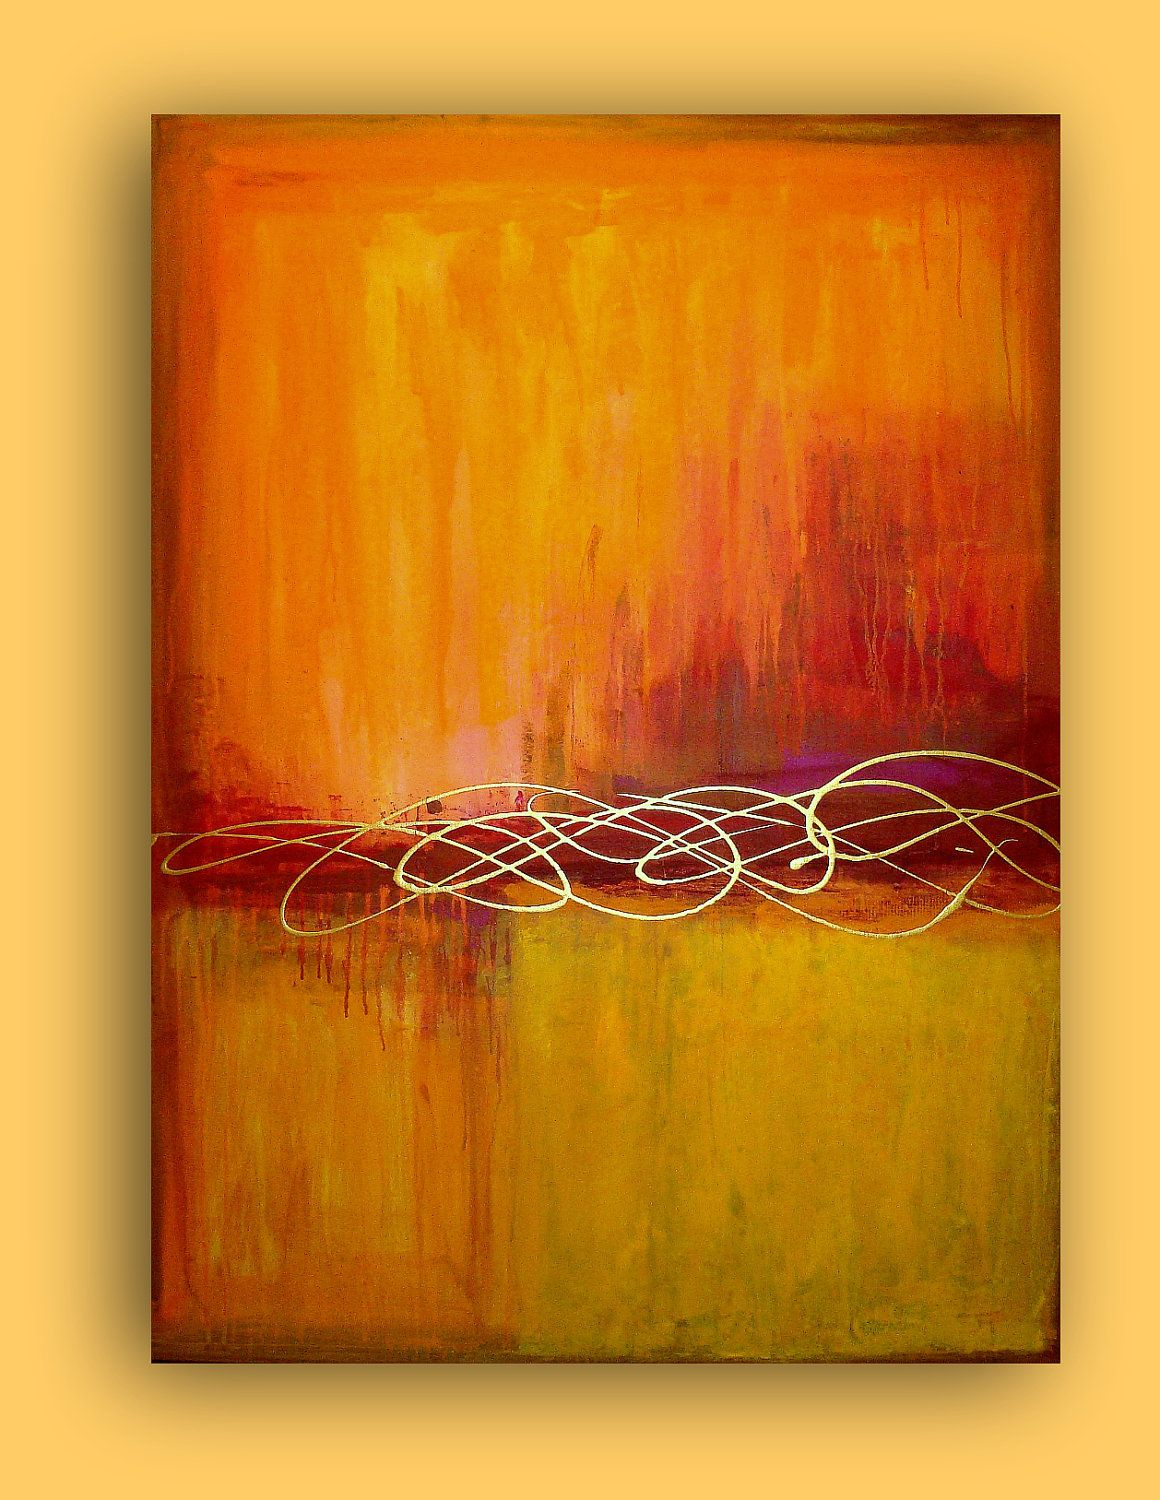 ART ORIGINAL ABSTRACT Huge Orange and Red Acrylic Abstract Painting Fine  Art on Gallery Canvas Autumn